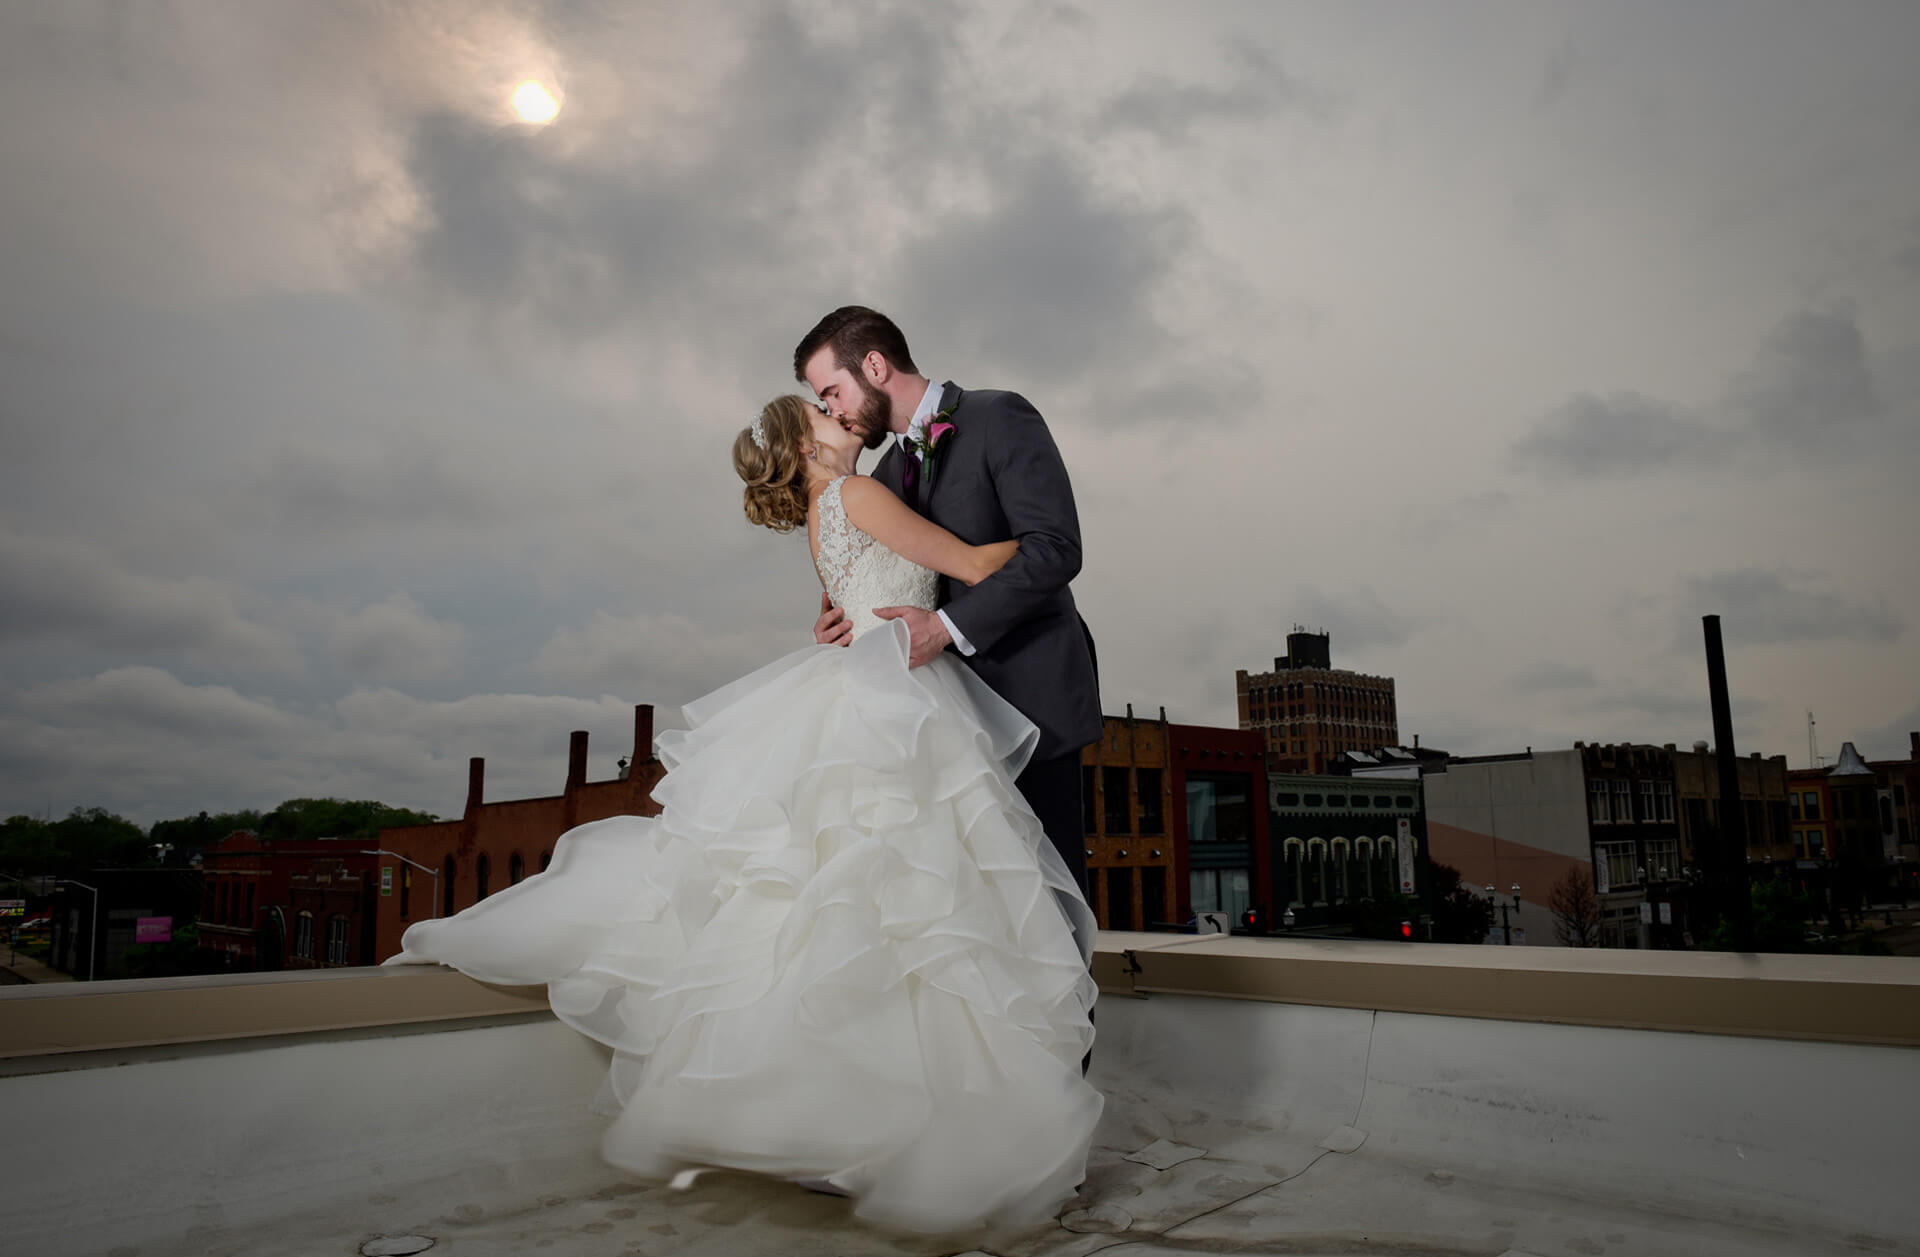 A couple kissing on top of the Crofoot Ballroom during a storm in Pontiac, Michigan just after their wedding is in part what has gotten me voted best Michigan wedding photographer 10 years in a row.